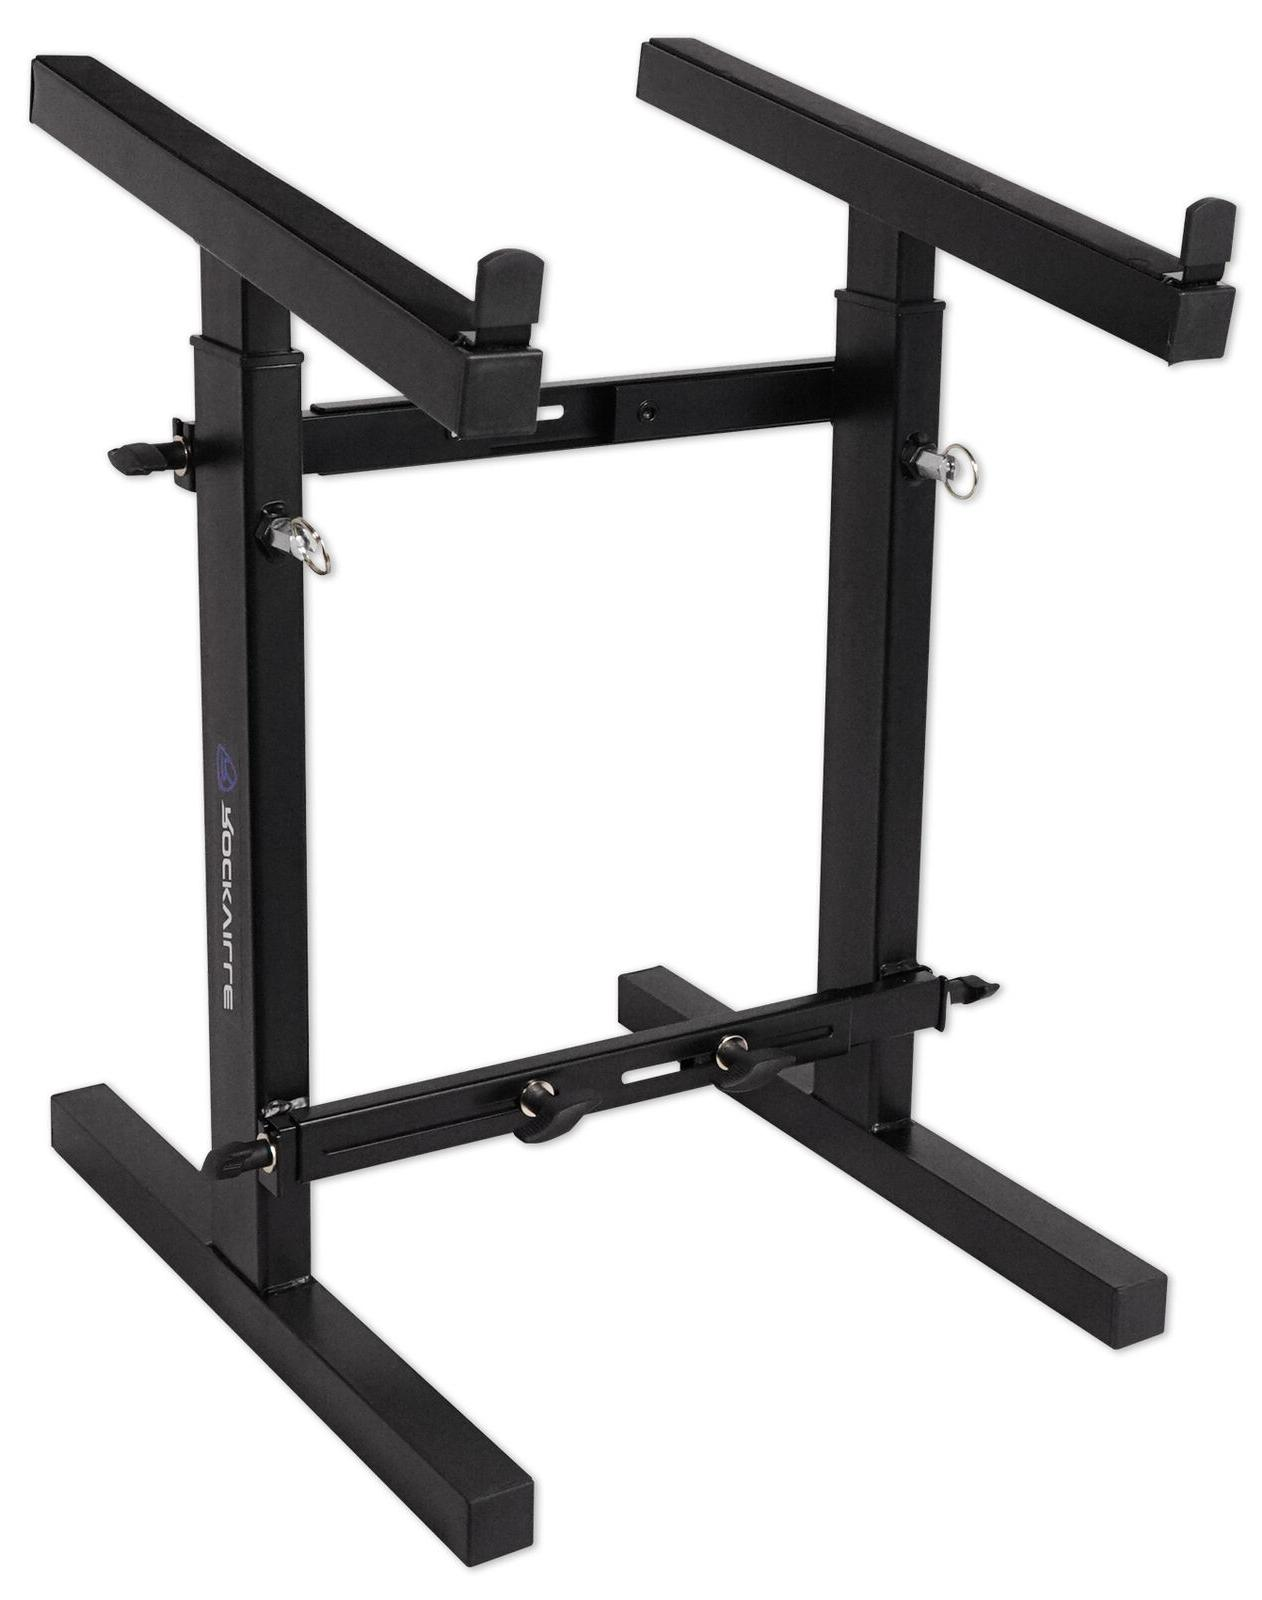 Rockville Mixer Stand - and